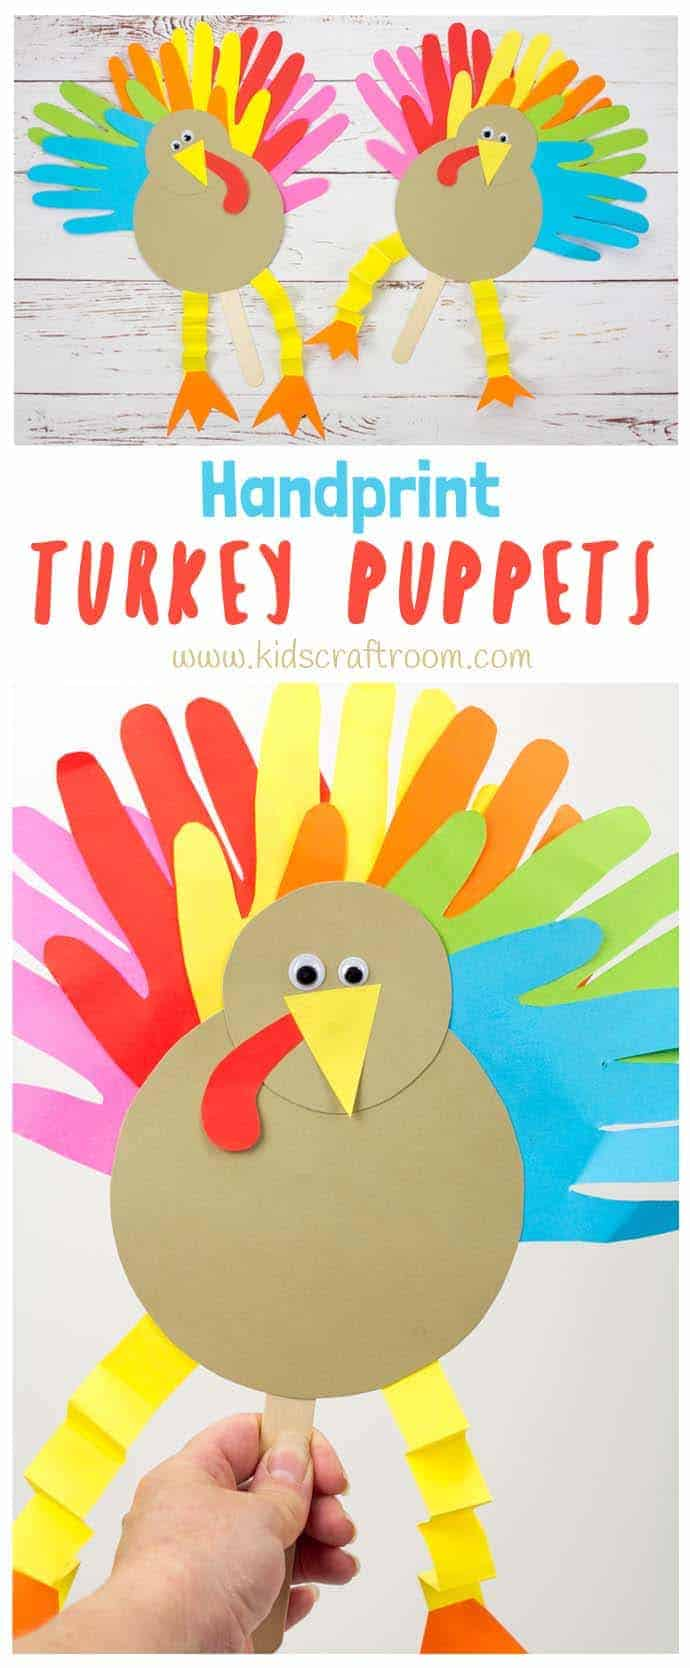 These Thanksgiving Handprint Turkey Puppets are such a fun way to keep the kids entertained this holiday and because the turkey's feathers are made from handprints they're an adorable keepsake as well! Such a fun Thanksgiving craft to make and play with and if you want to you can write thankful notes on the tail feathers too. #thanksgiving #thanksgivingcrafts #turkey #turkeycrafts #turkeyday #puppets #handprintcrafts #kidscrafts #kidscraftroom